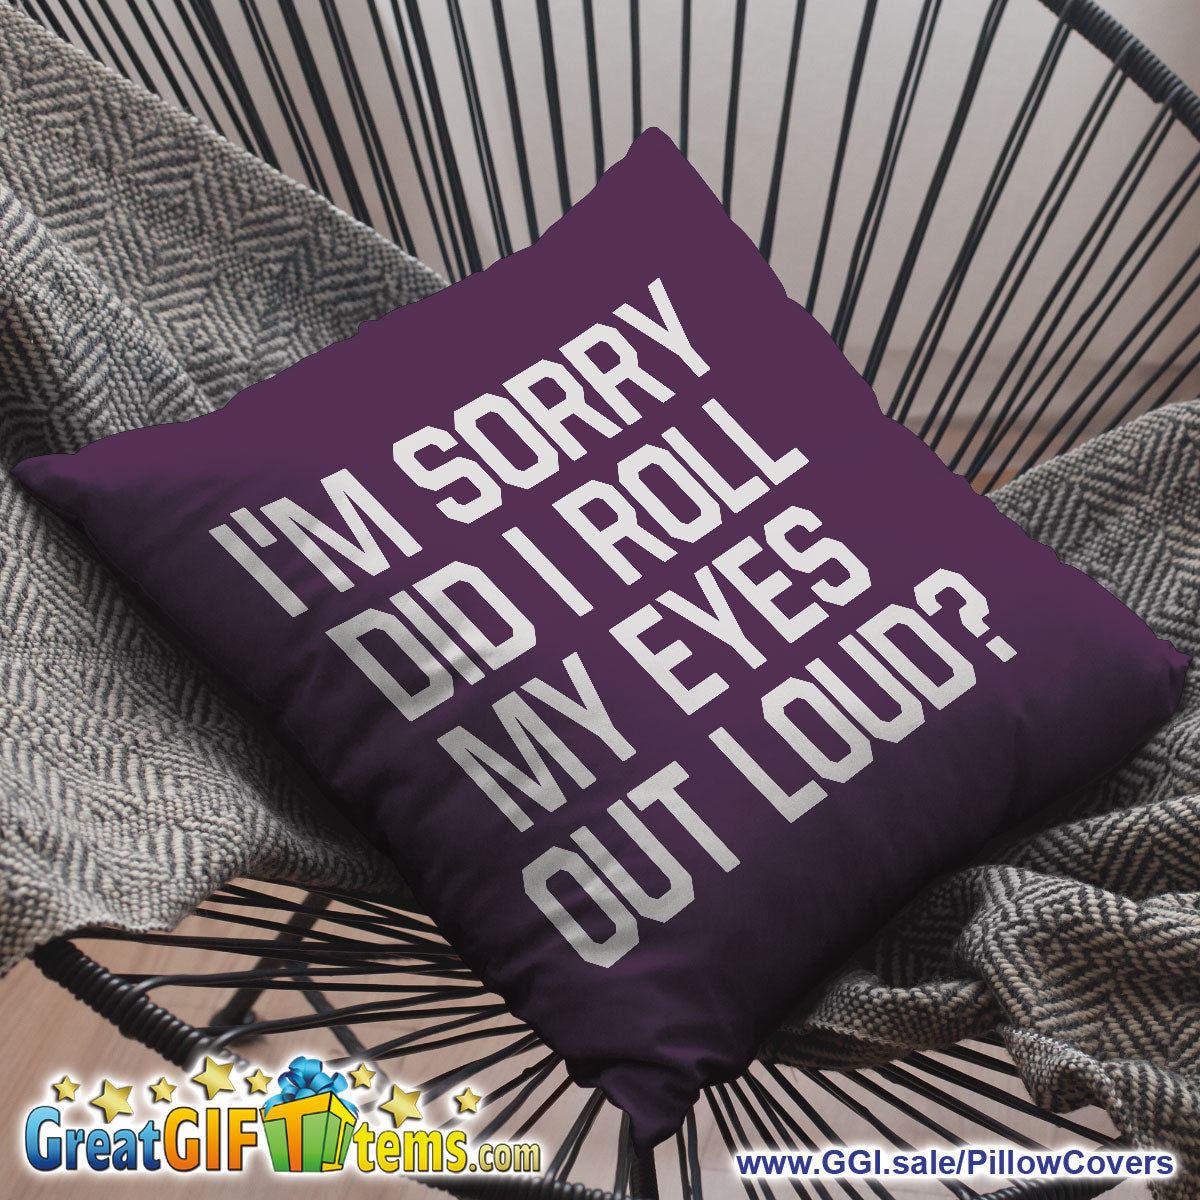 I'm Sorry Did I Roll My Eyes Out Loud Throw Pillow Cover